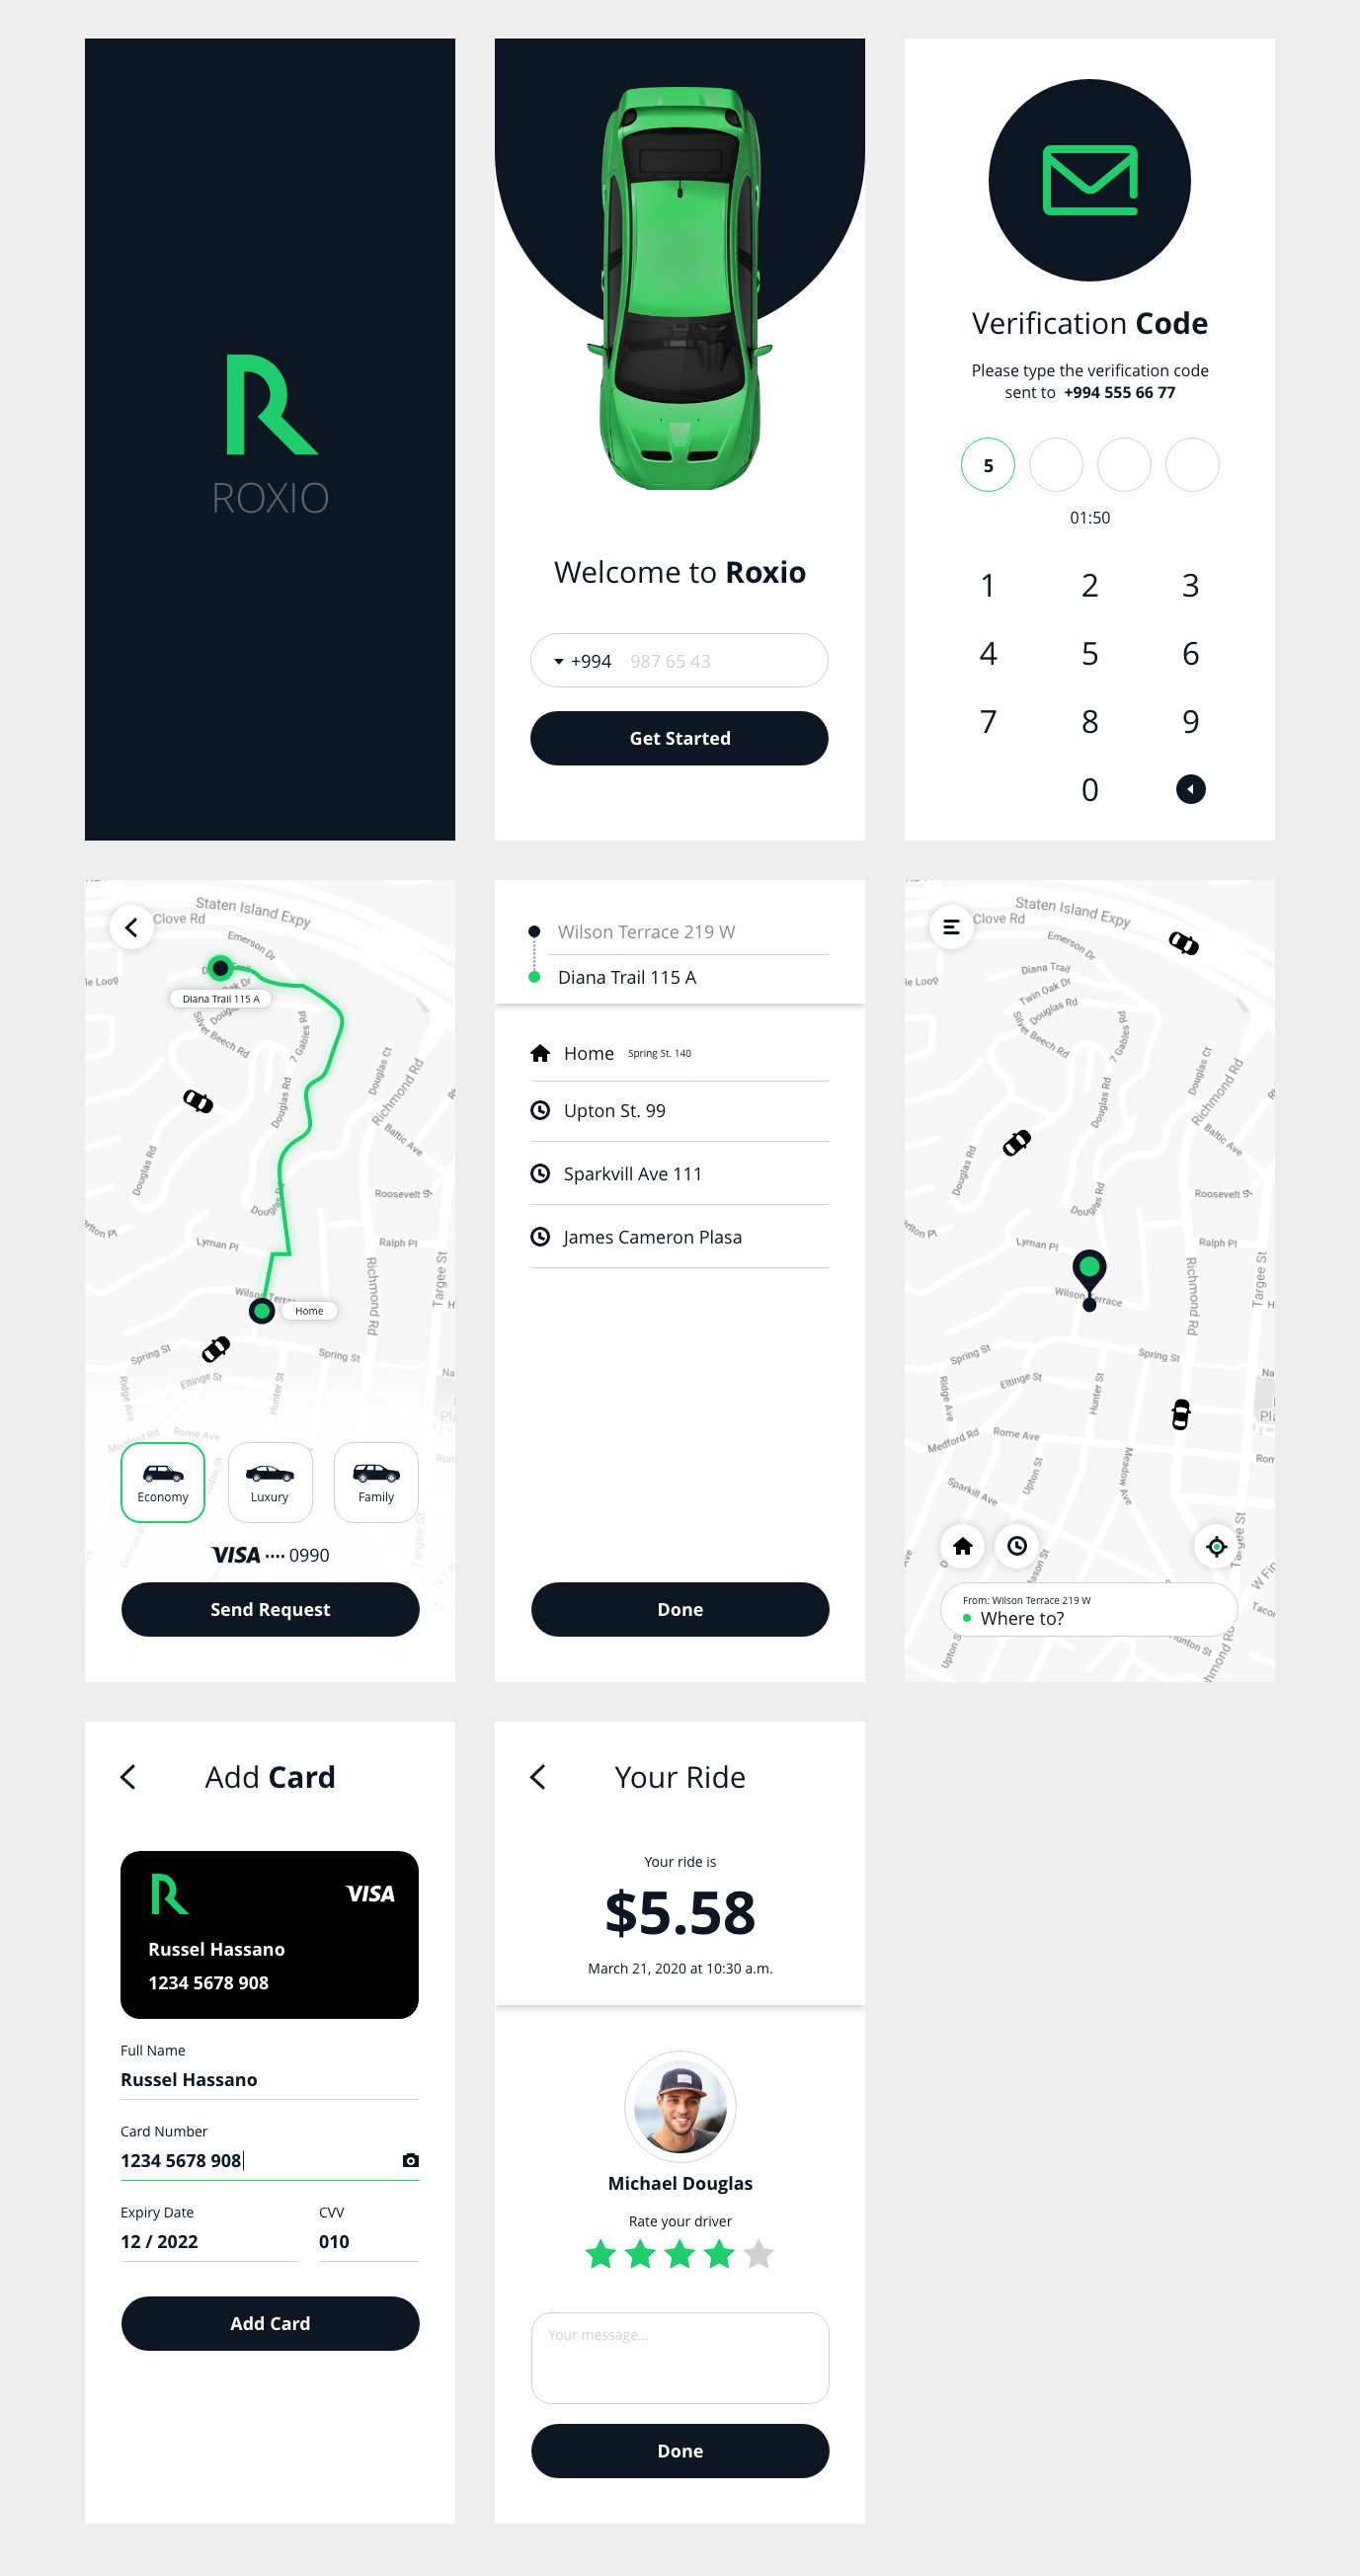 Roxio - Free Taxi App for Adobe Xd - Minimal and clean app design, 8 screens for you to get started. #MadeWithAdobeXD